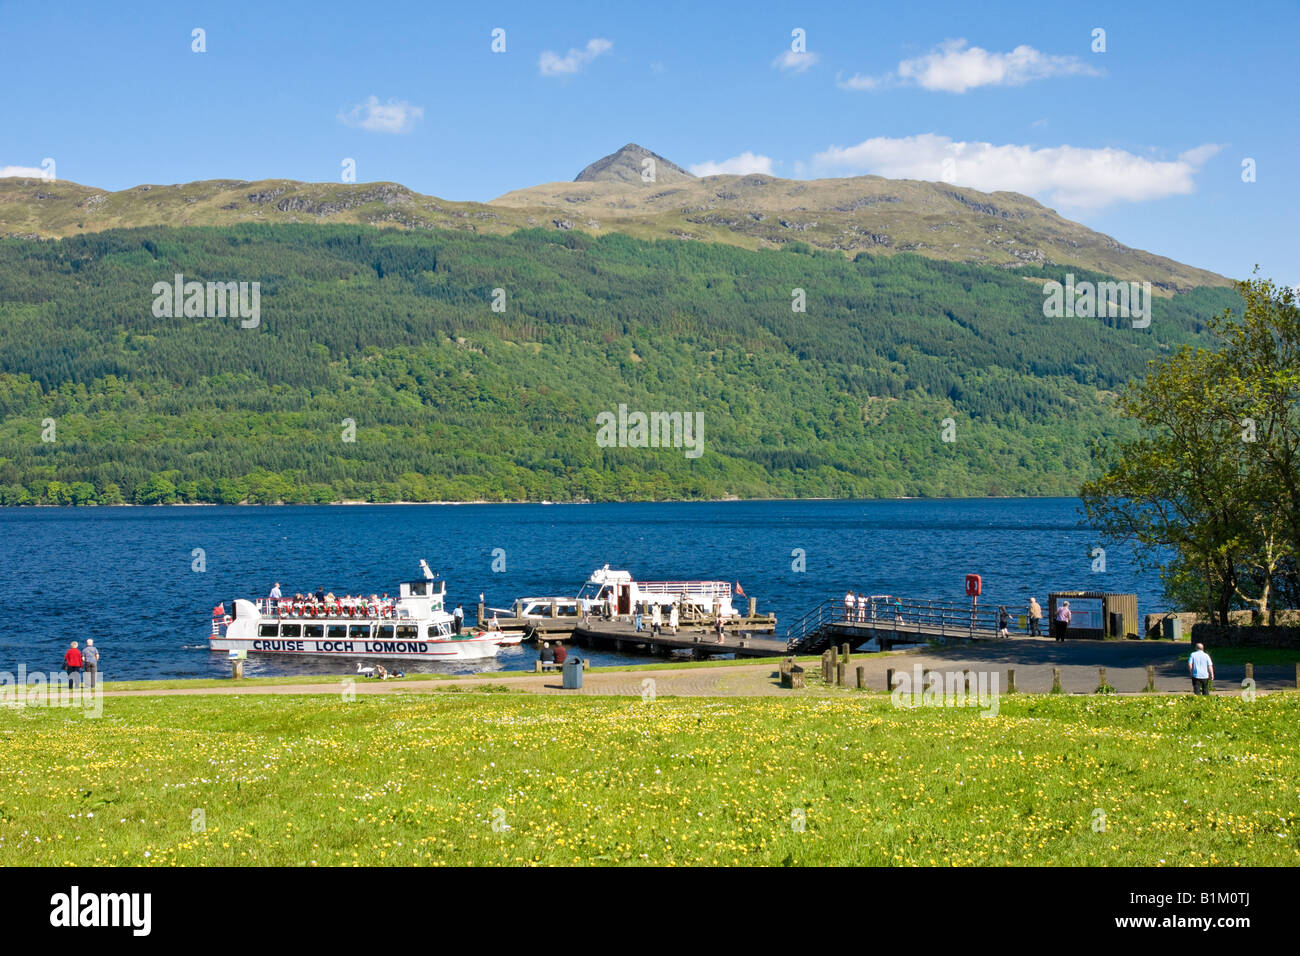 Cruise Loch Lomond passenger vessel approaching the pier at Tarbet Loch Lomond Scotland on a sunny day with Ben - Stock Image